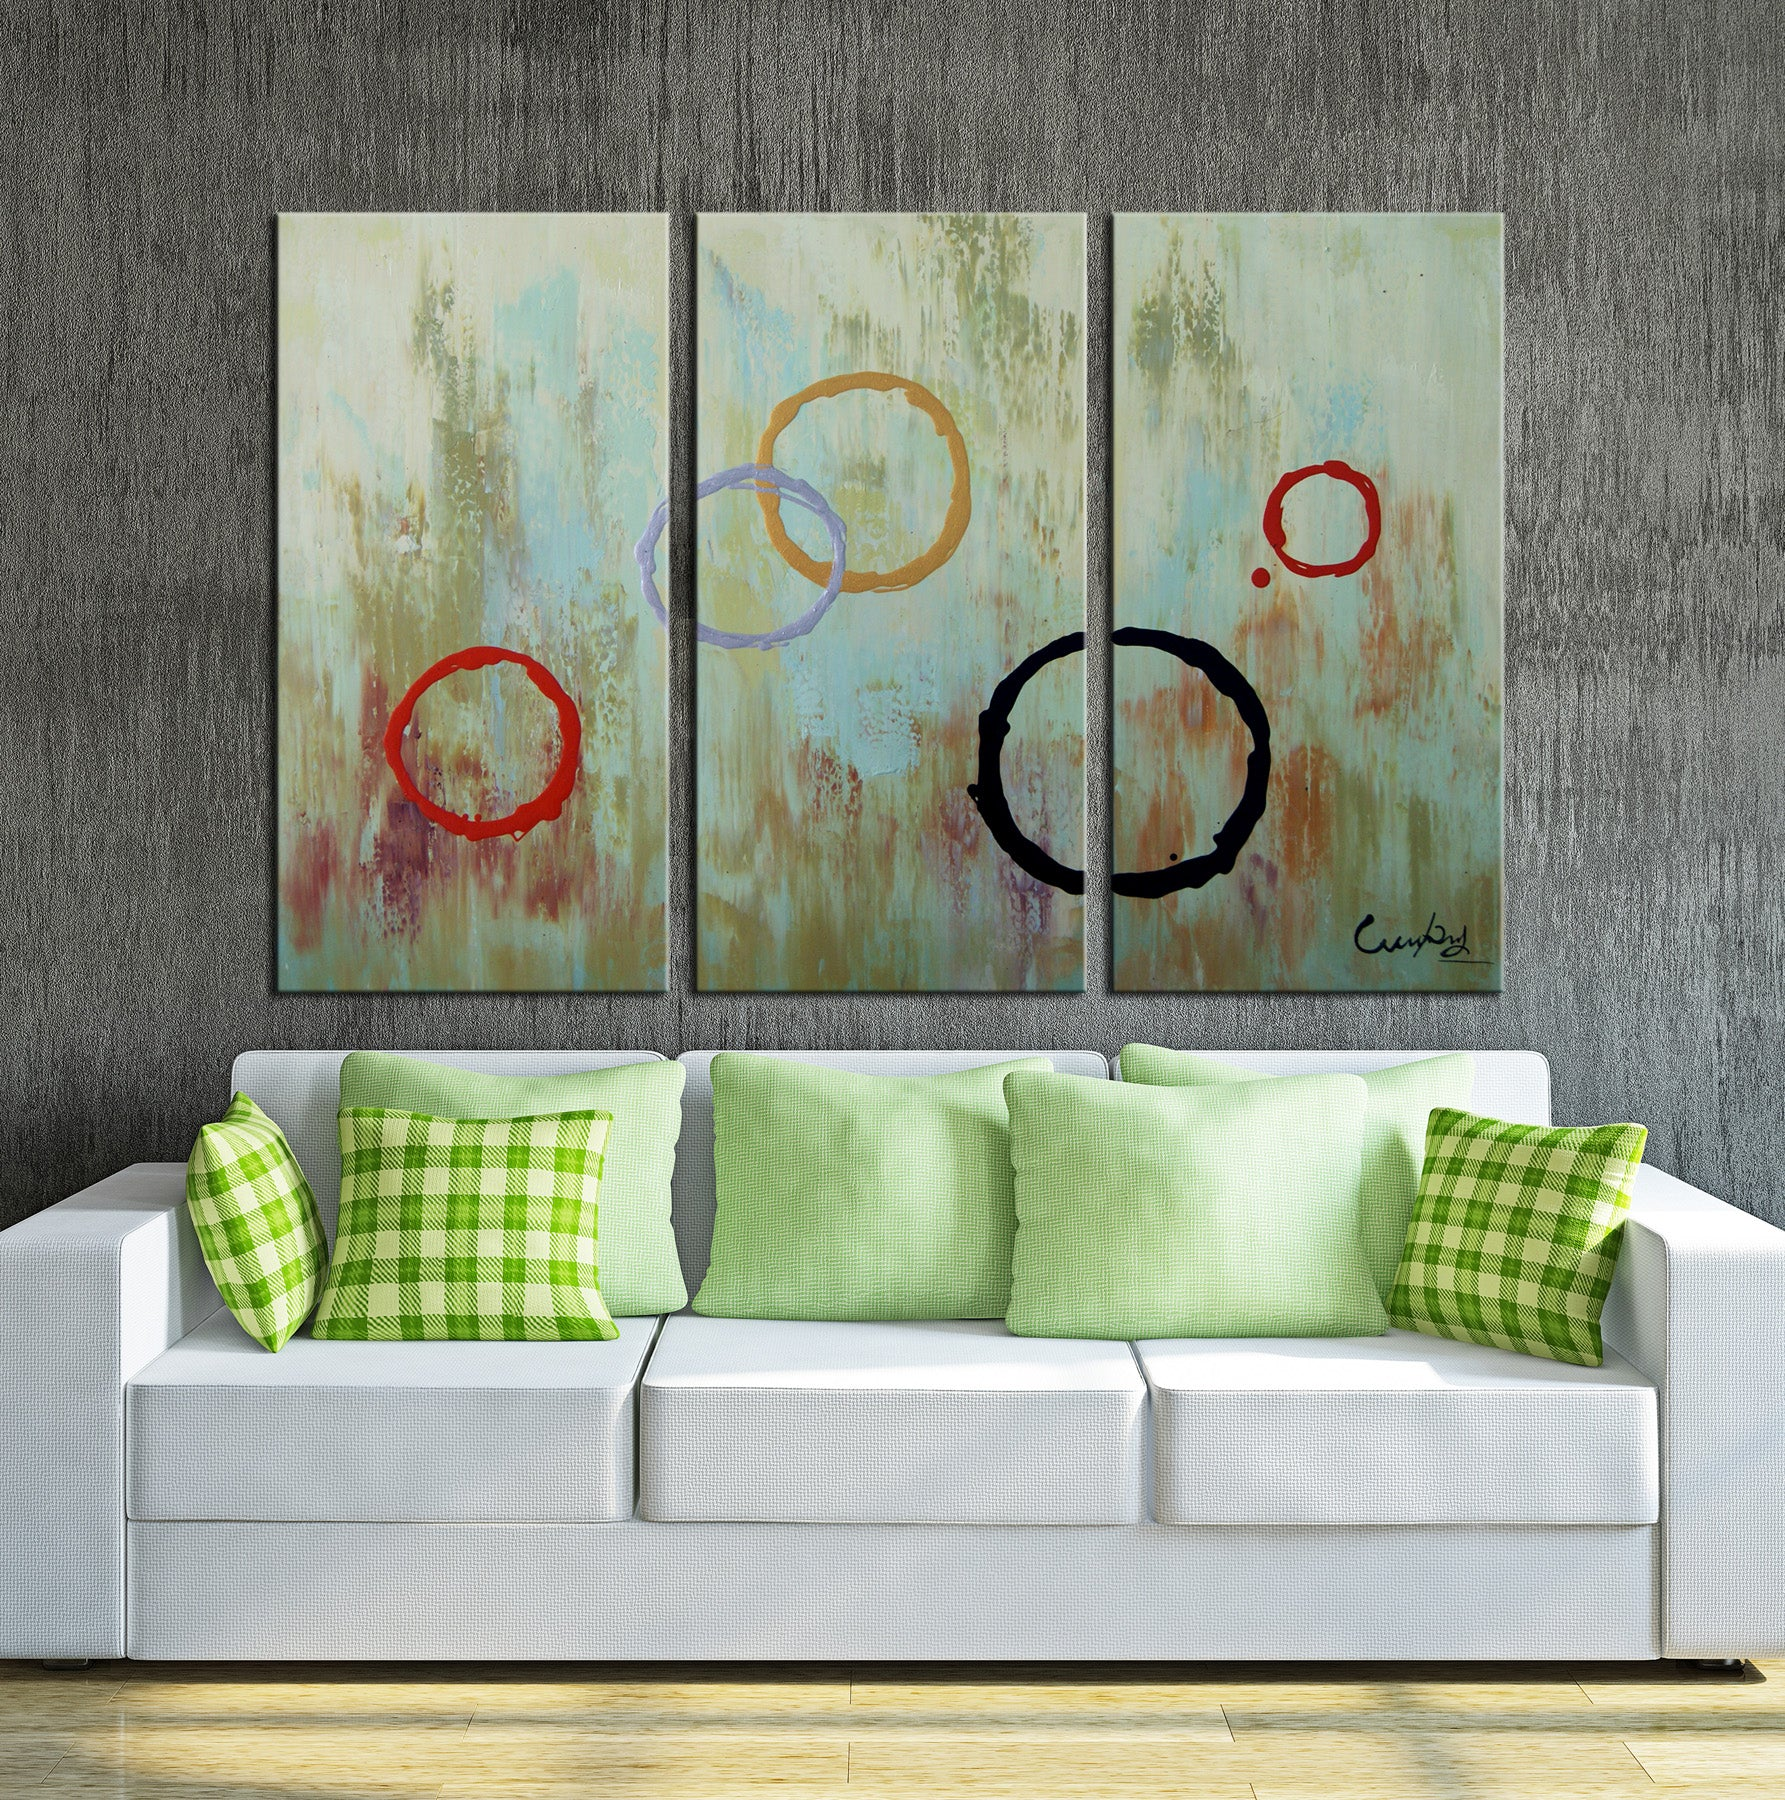 3 pieces circle contemporary oil painting canvas framed wall art